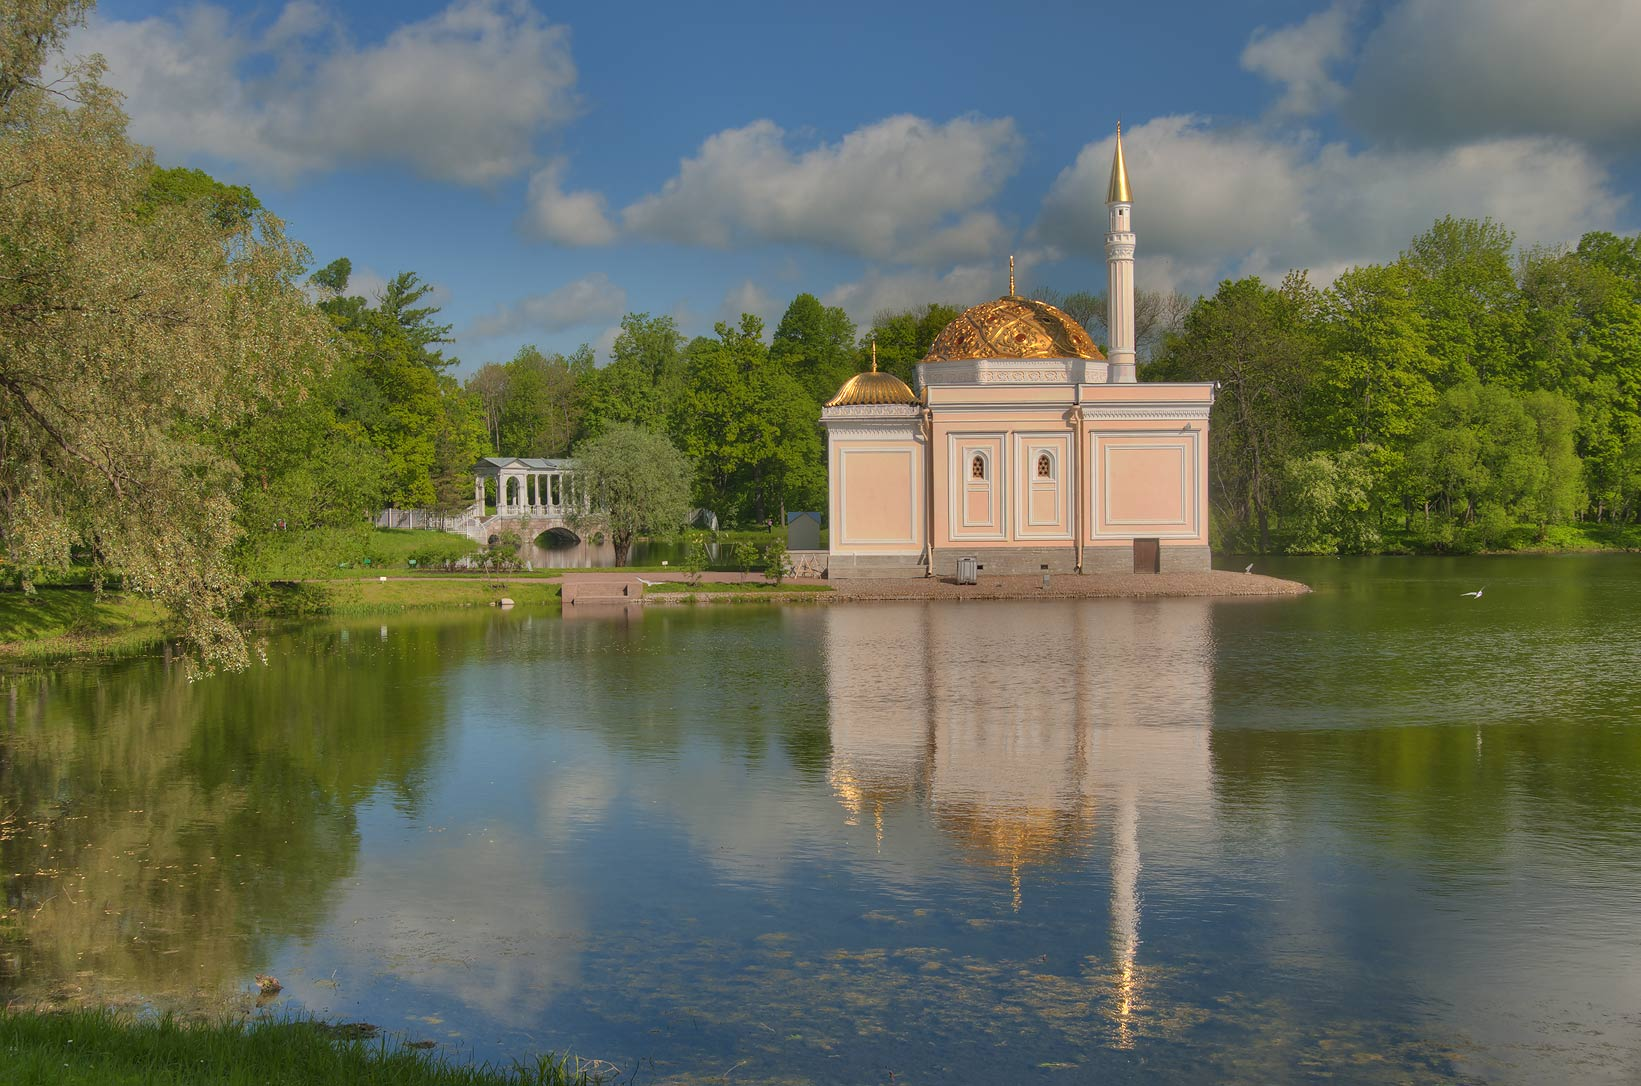 Turkish Bath Pavilion (1850-1852) in...south from St.Petersburg, Russia